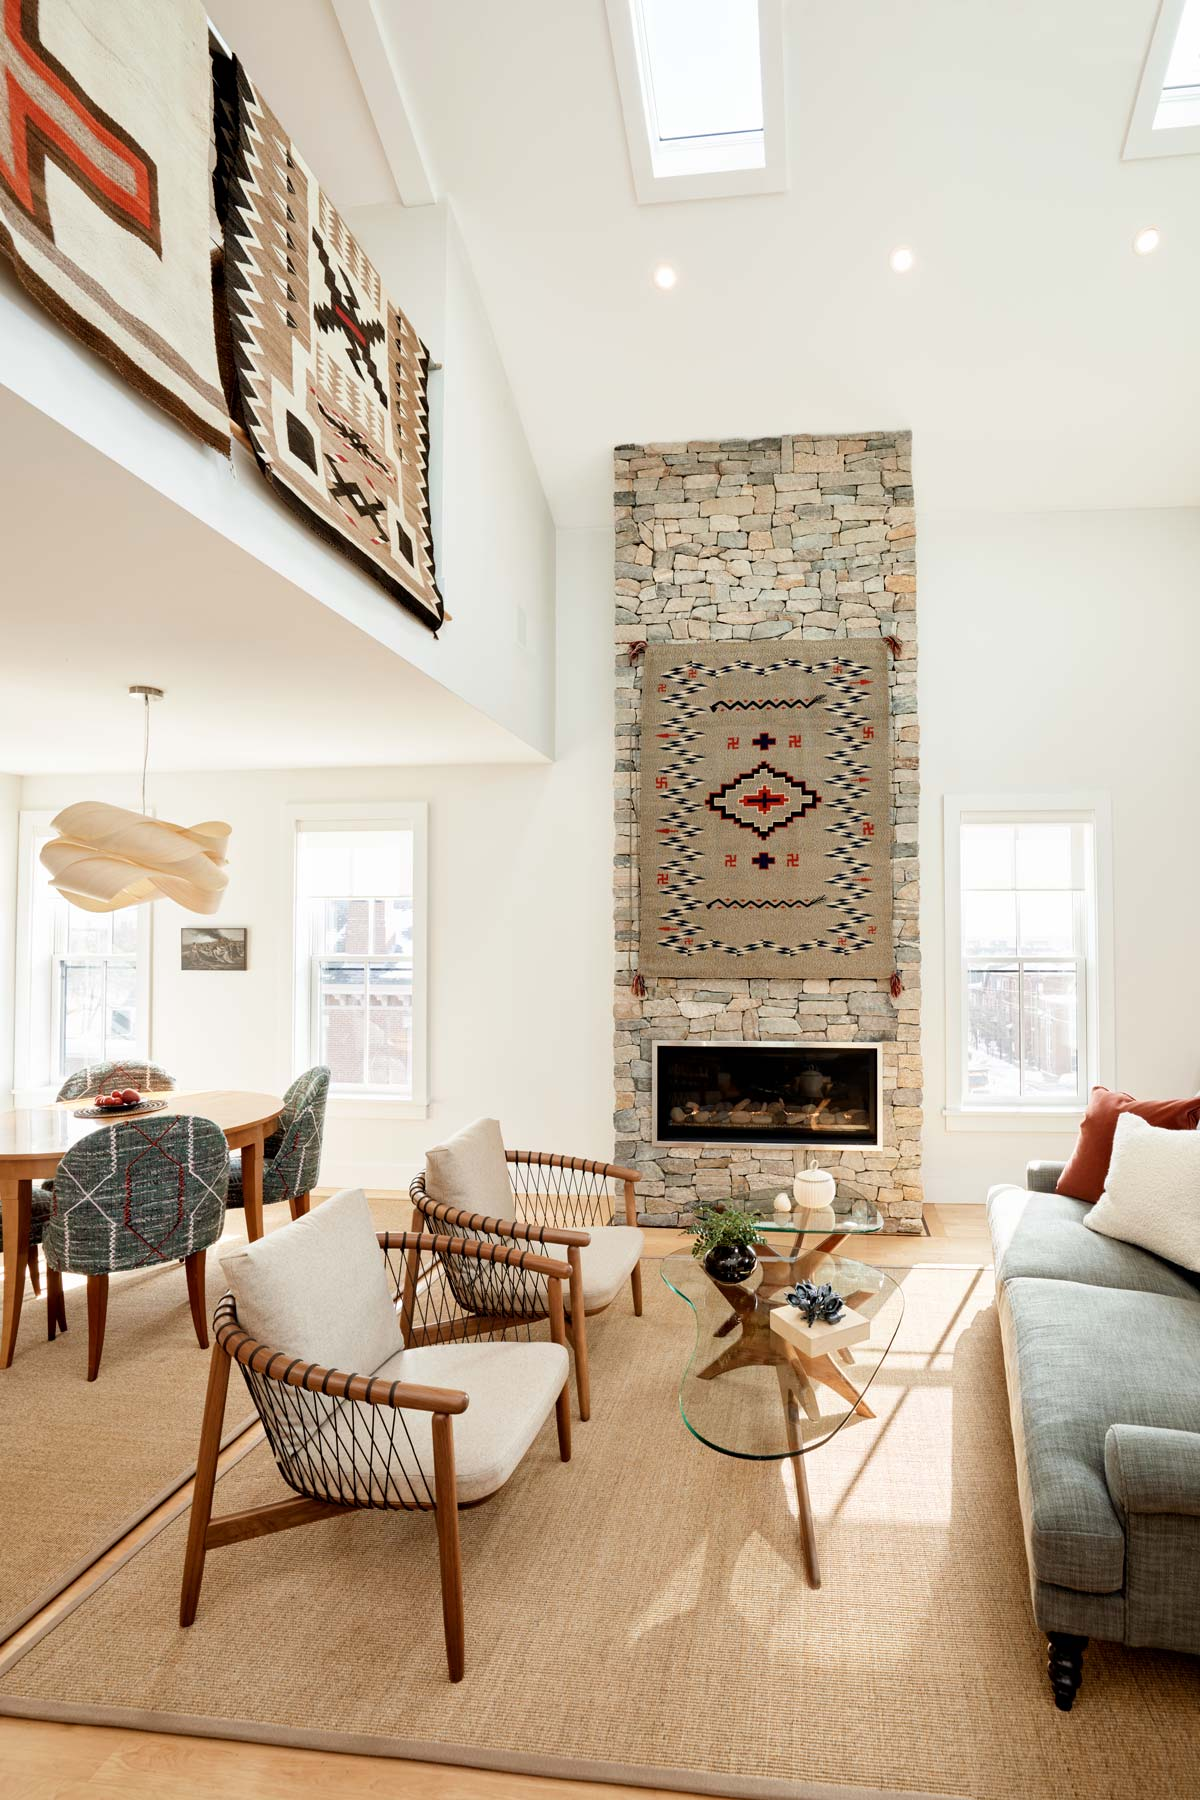 Interior designer Ariana Fischer paired new, parachute-corded chairs in neutral tones with Werber's midcentury modern, glass-top tables to give the seating area an open, airy feeling and highlight the Navajo weaving hanging over the fireplace.